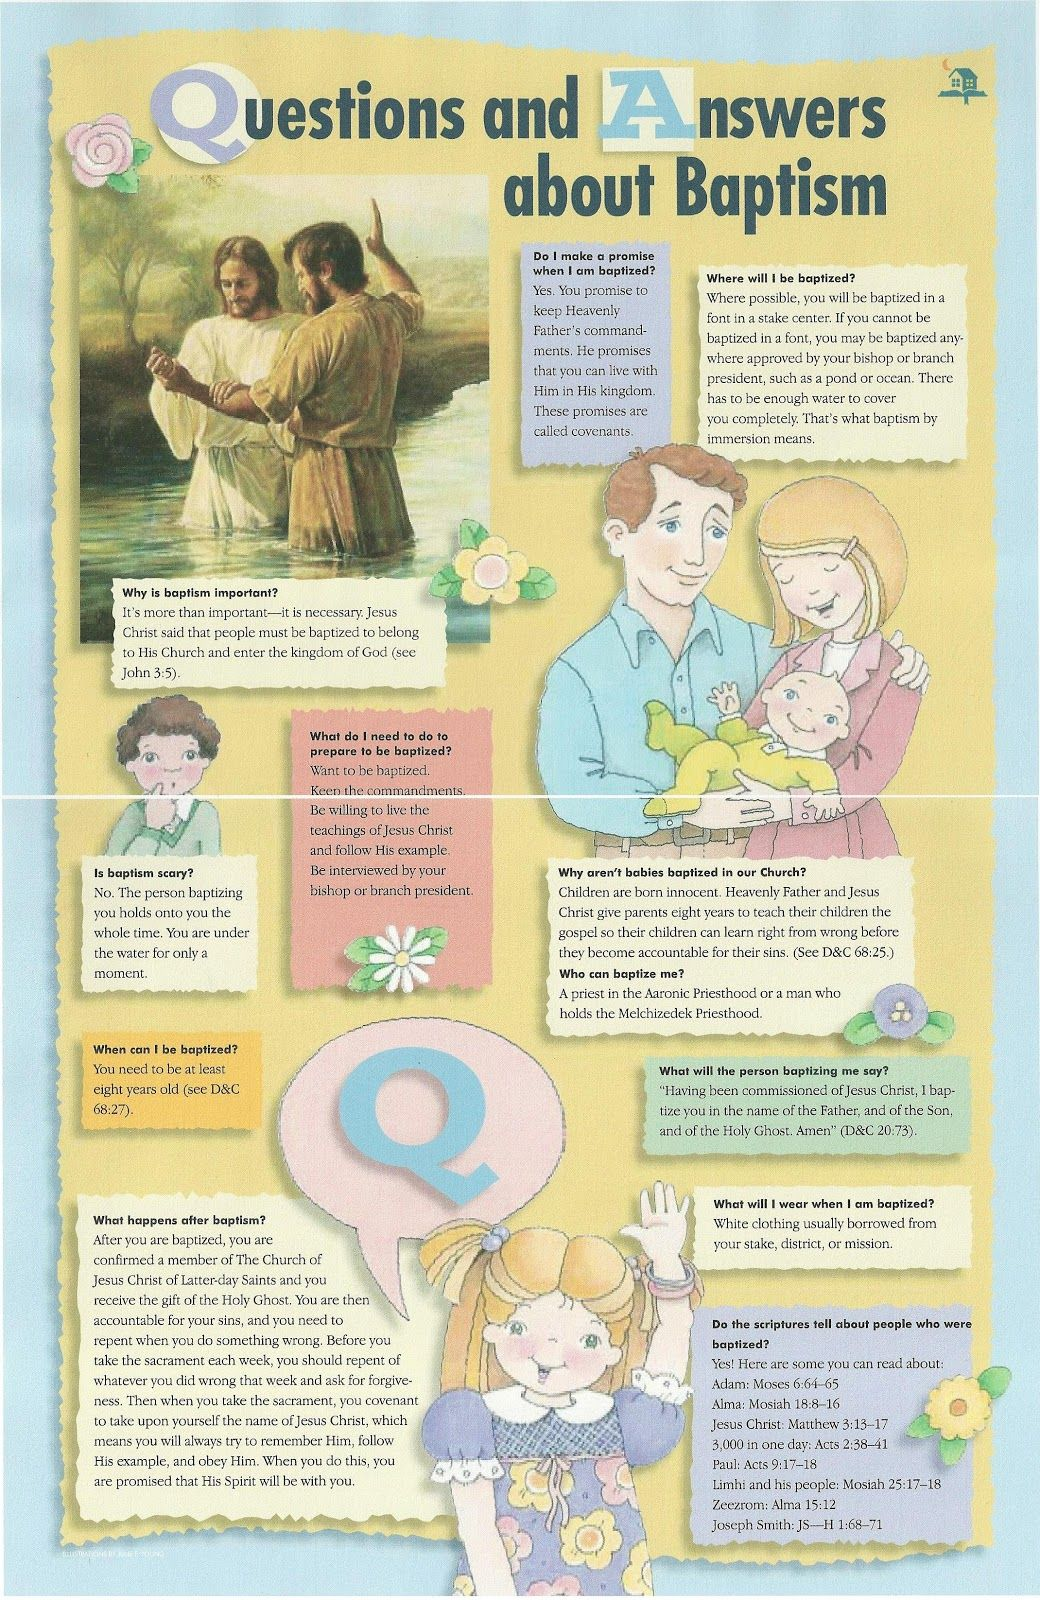 Primary 2 Lesson Manual 12 I Can Prepare For Baptism Should Mention That Demonstrate With Each Children How Their Father